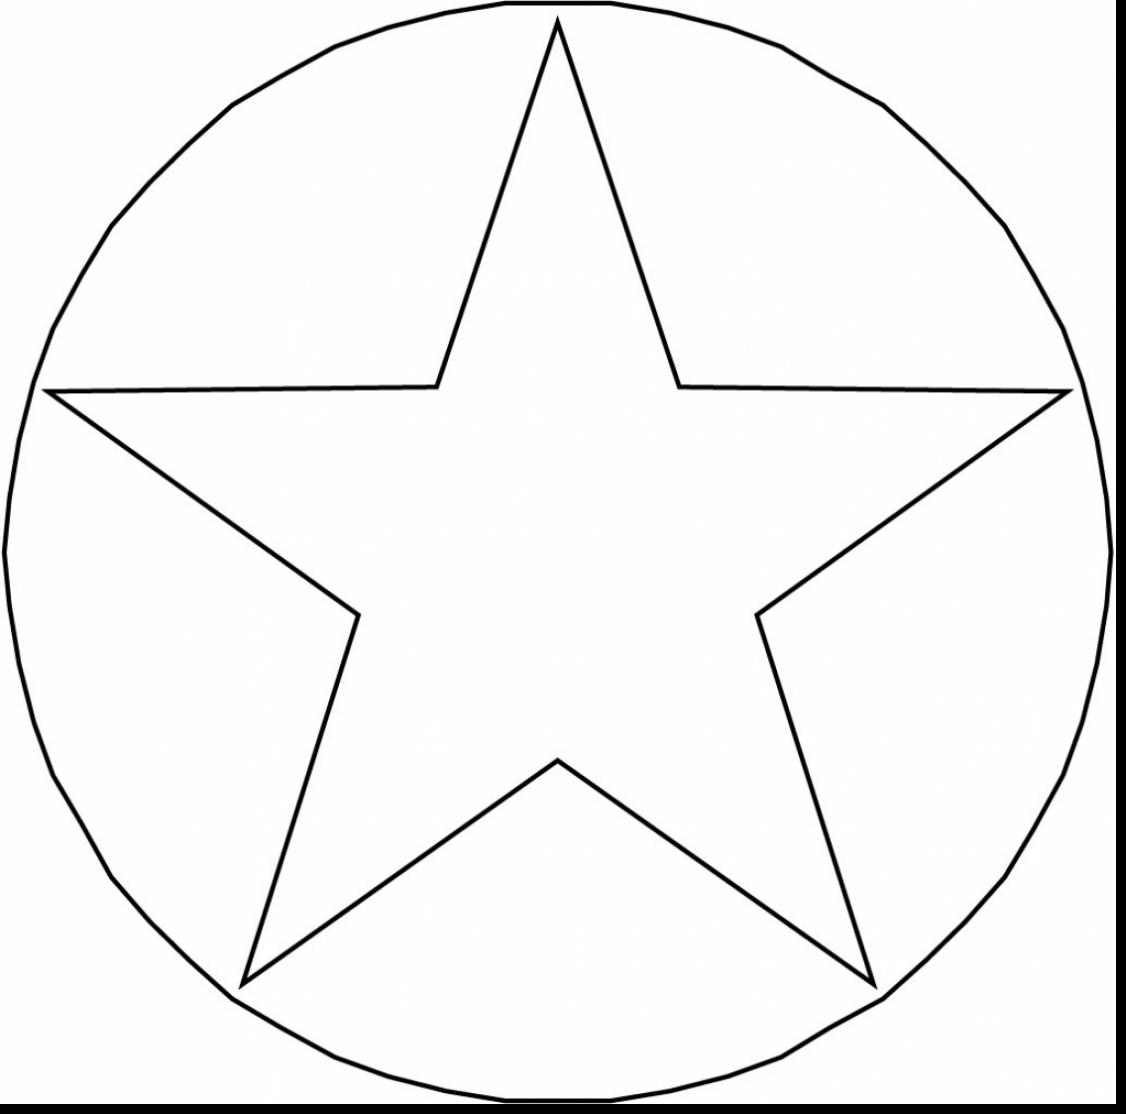 1126x1114 Excellent Coloring Pages Of Stars Shape Star To Print David Wars